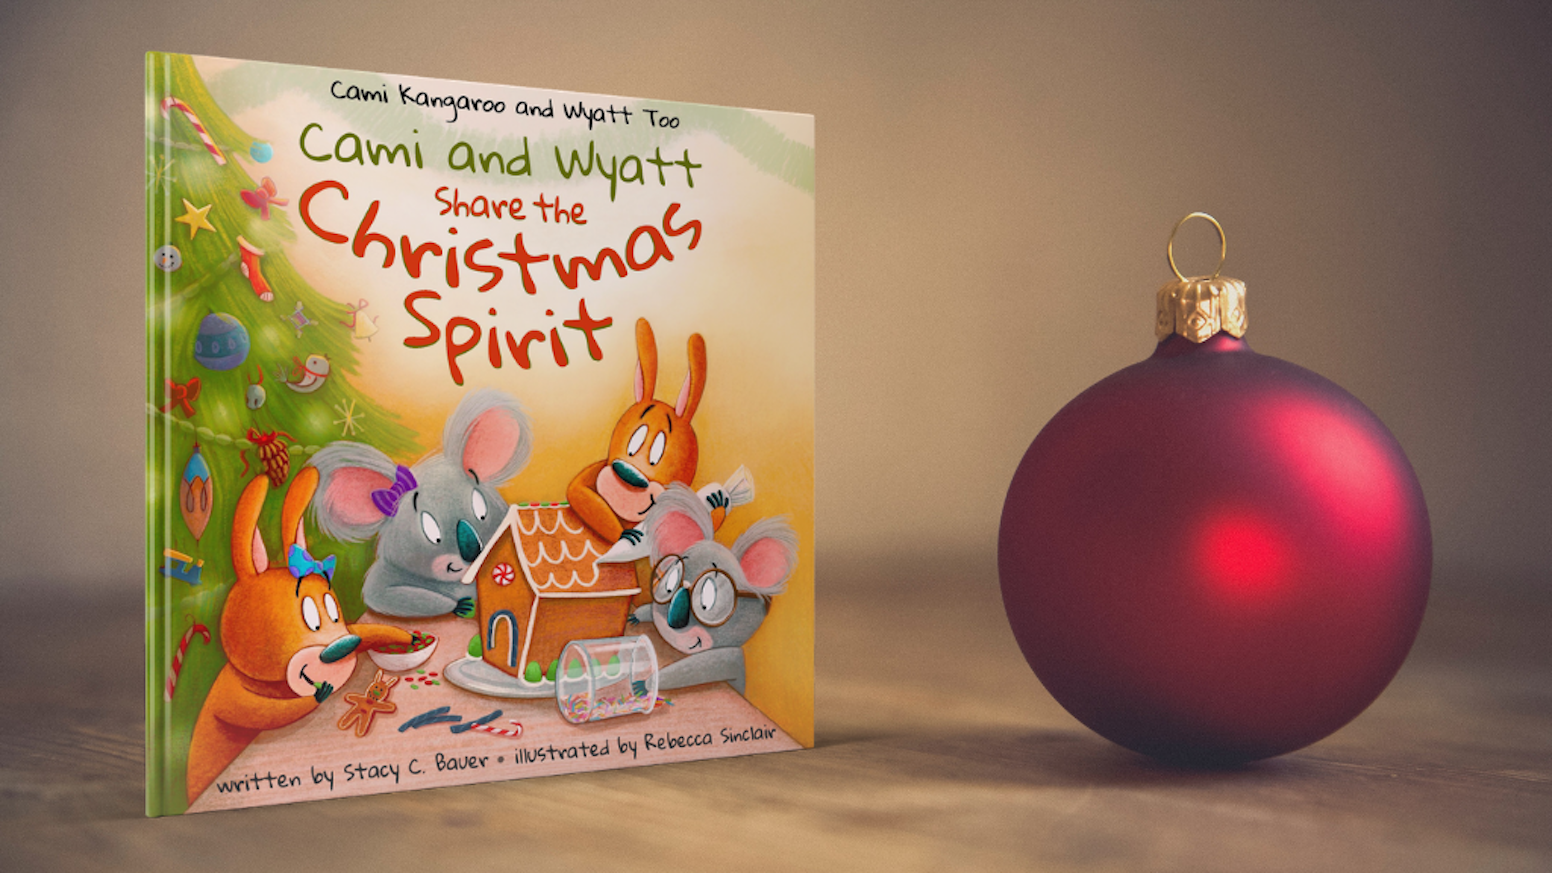 A children's book that will inspire kindness and compassion this holiday season.